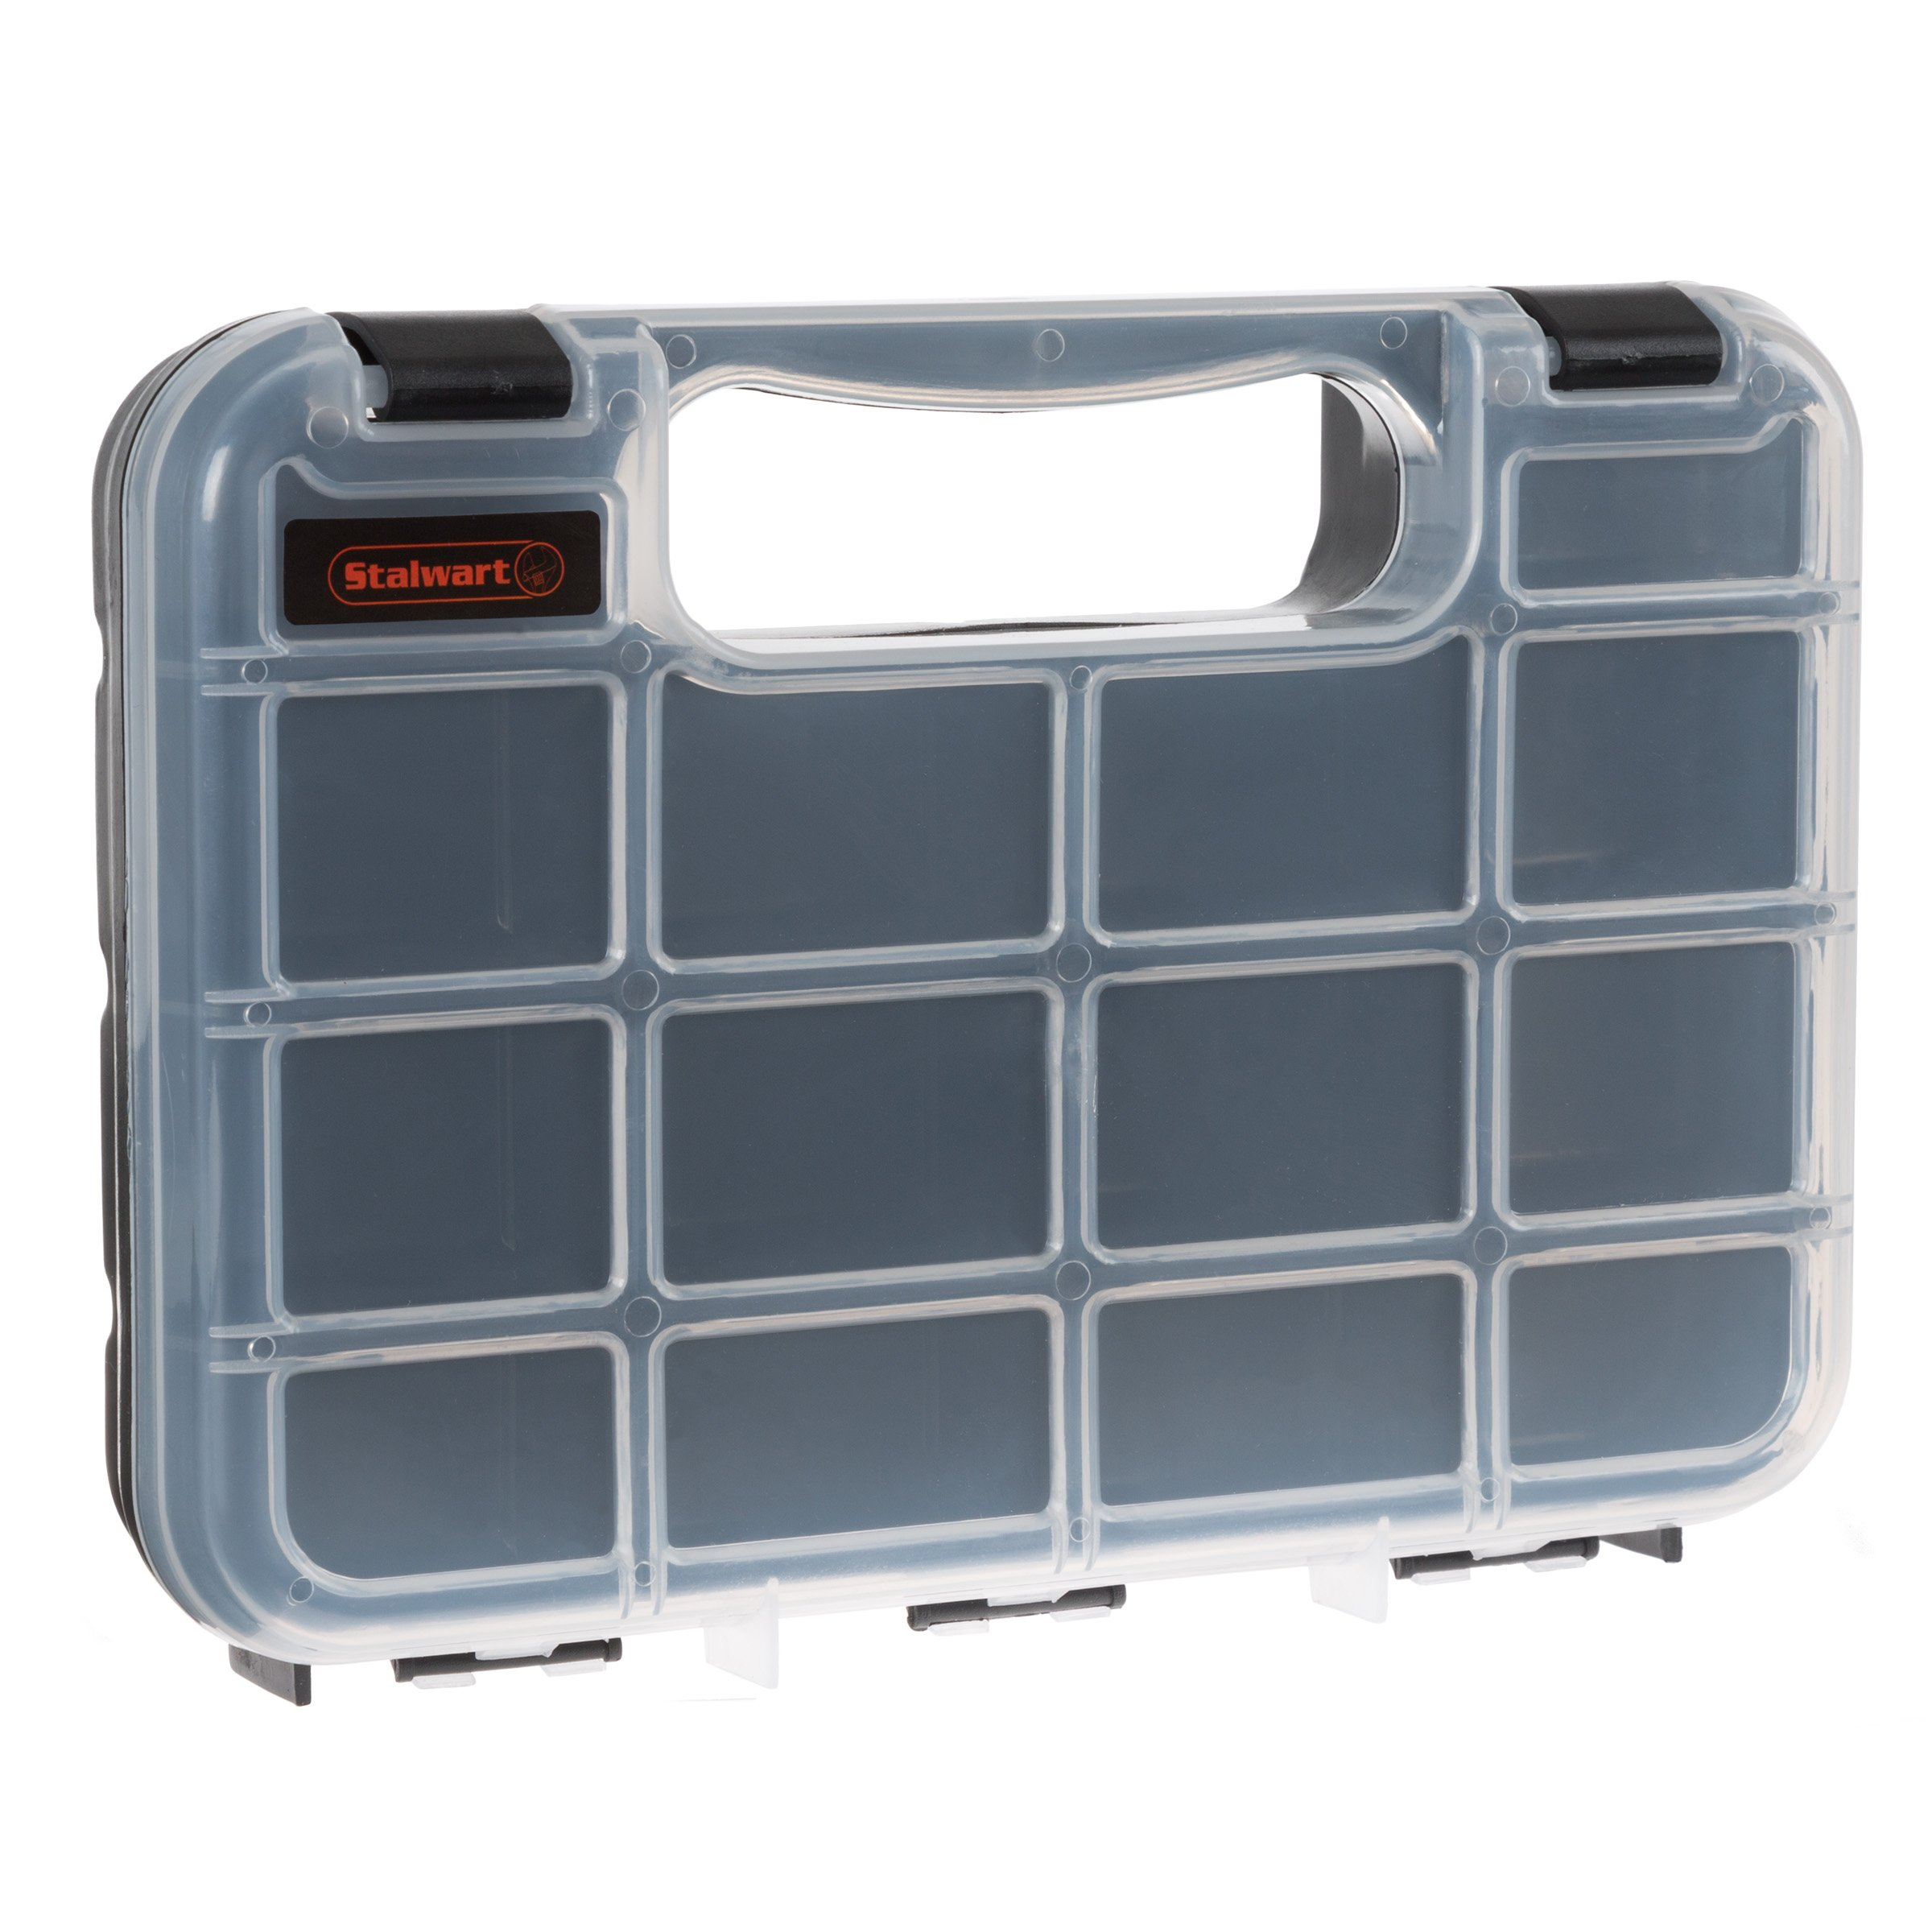 Portable Storage Case with Secure Locks and 17 Compartments with Removable Dividers for Hardware, Screws, Nails, Beads, Jewelry and More by Stalwart